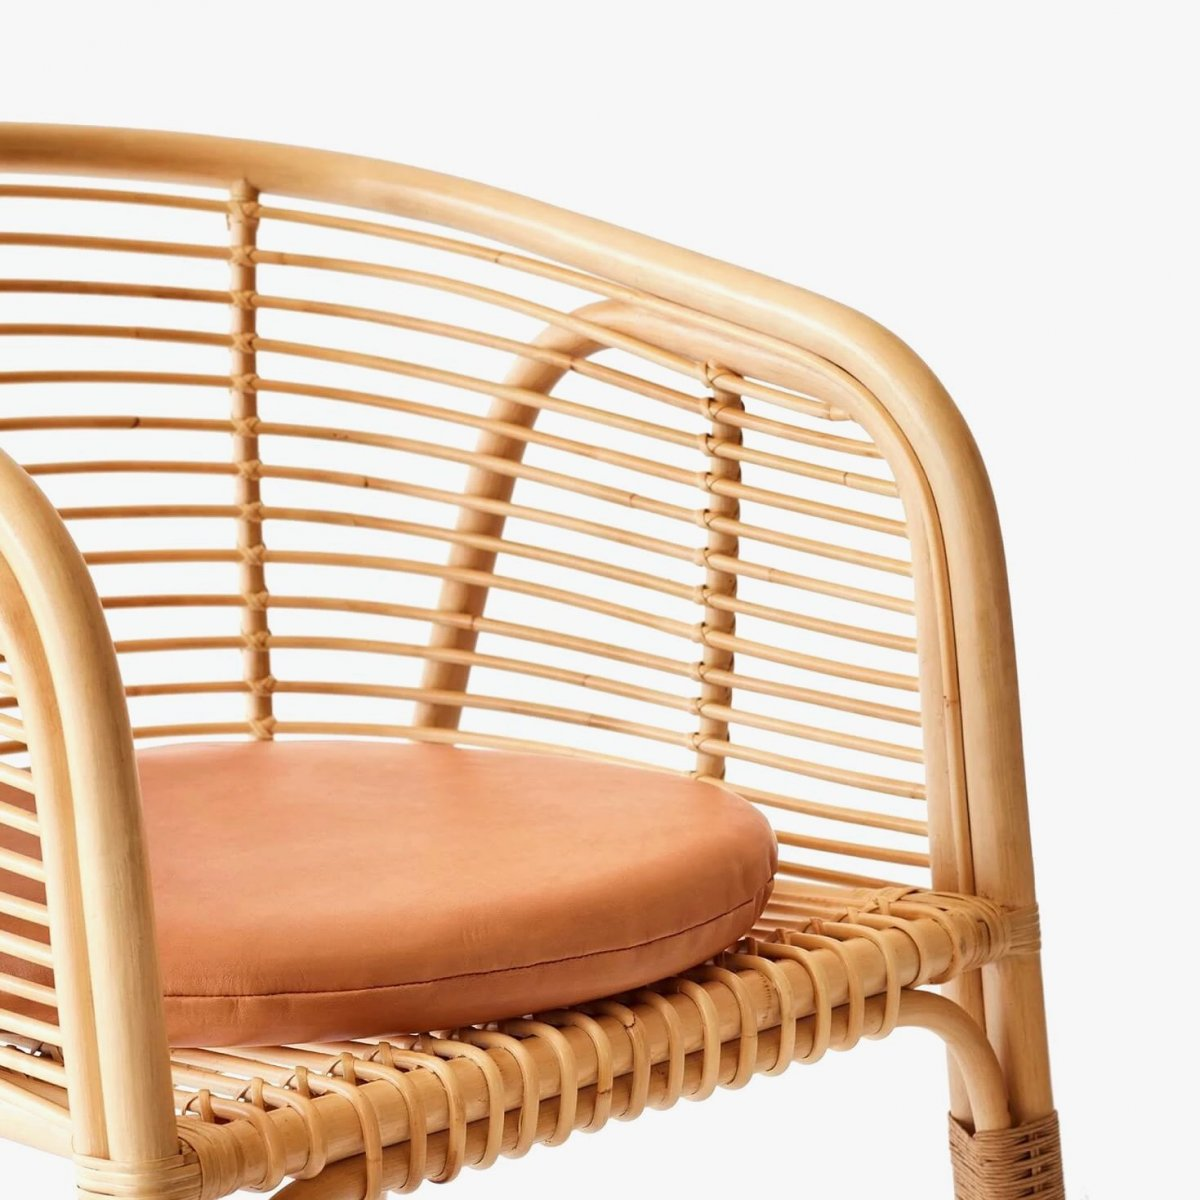 Lombok Rattan Lounge Chair, detail.